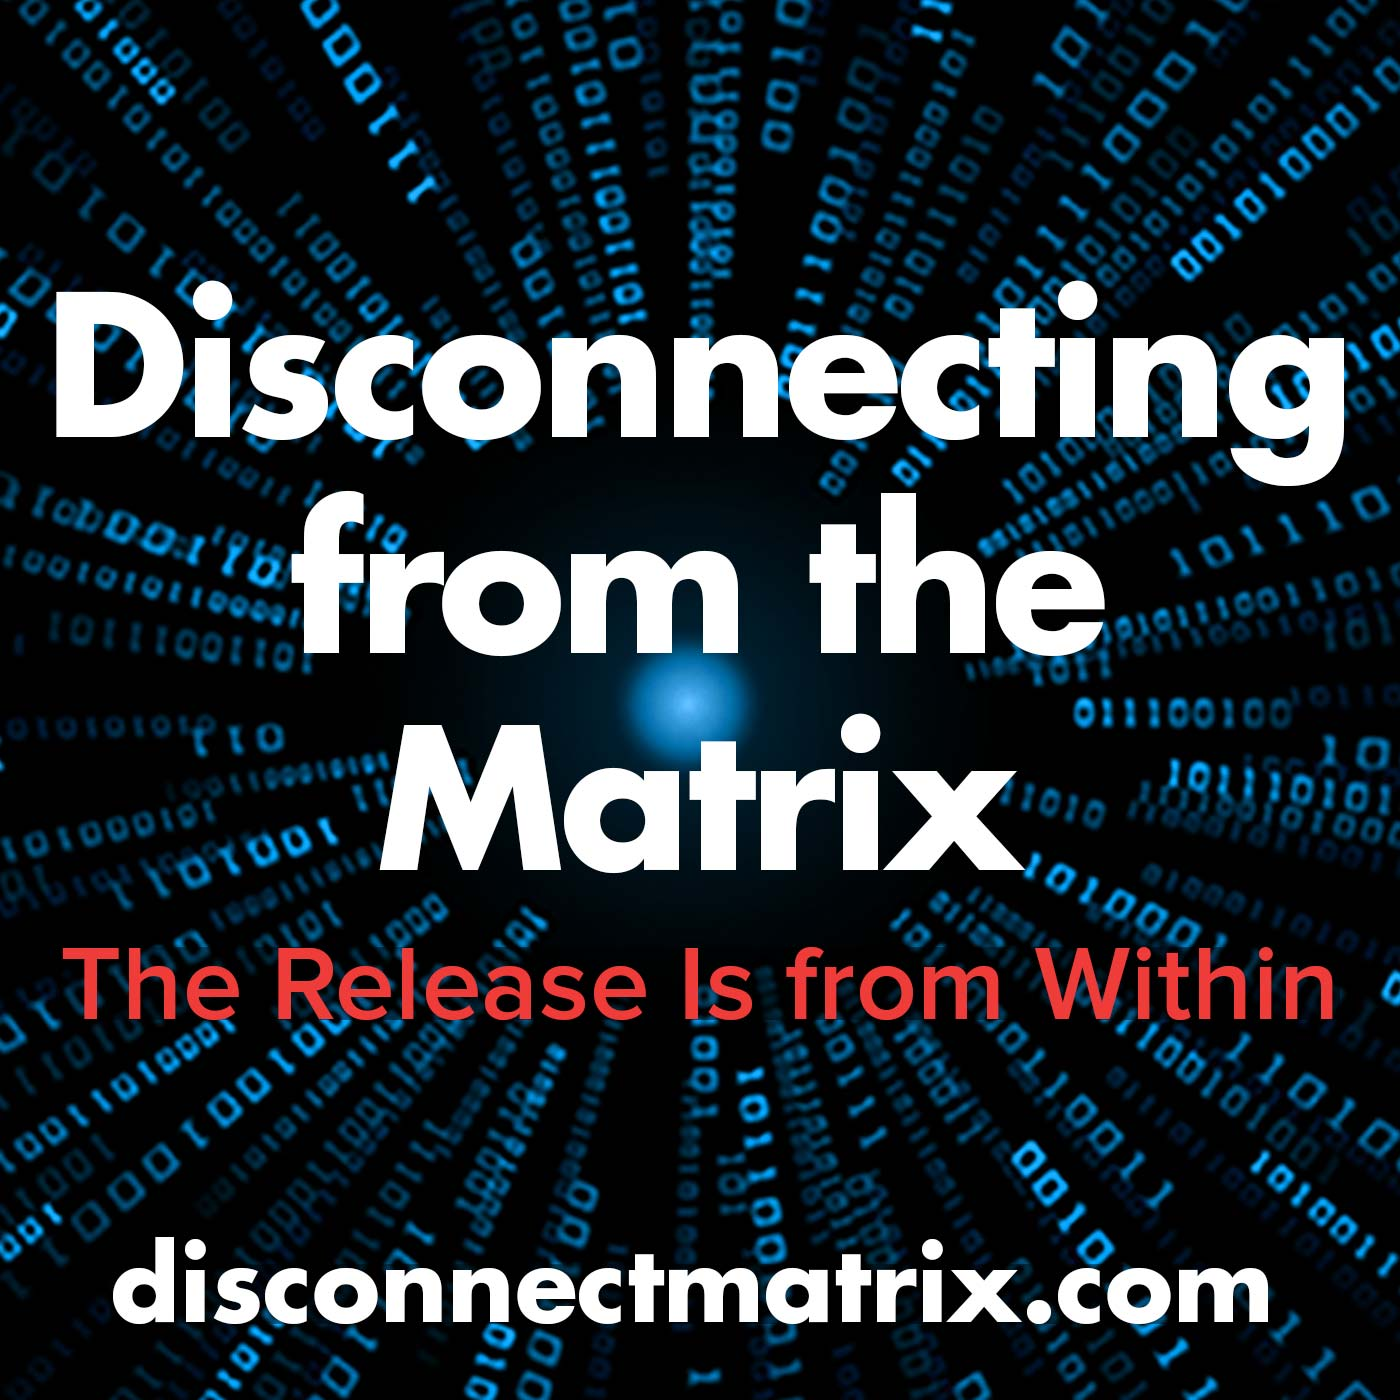 Disconnecting from the Matrix